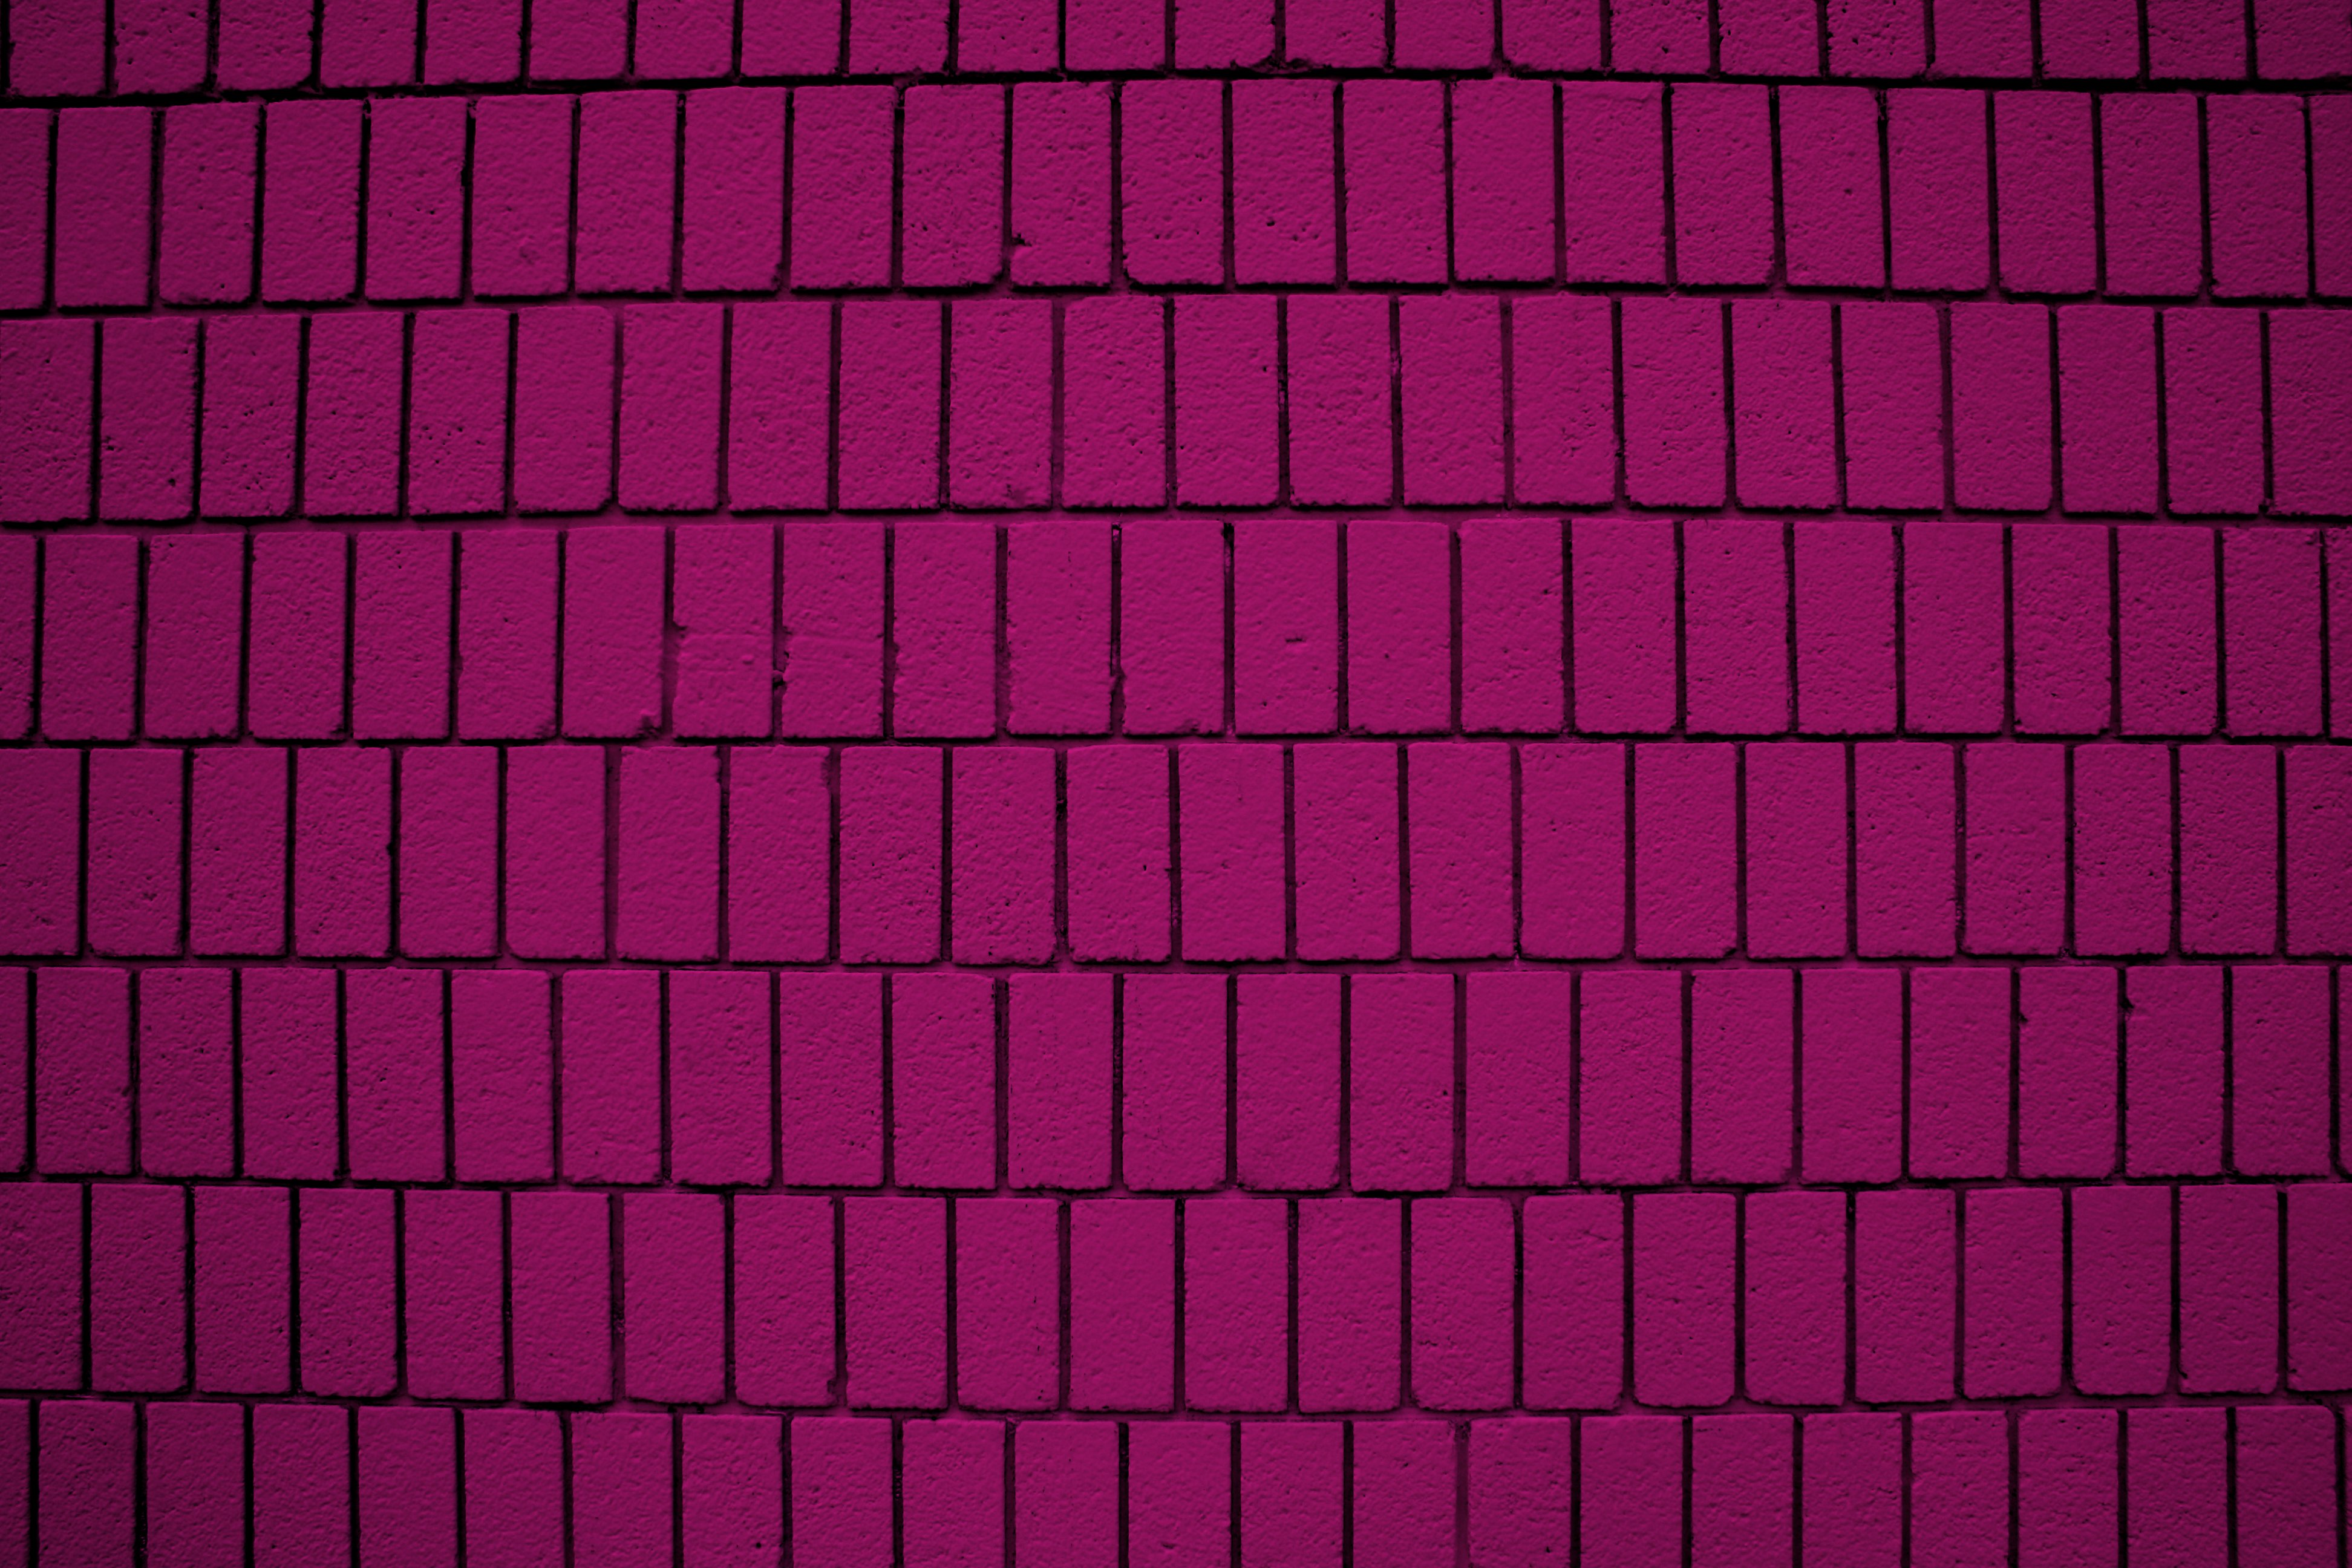 Magenta Brick Wall Texture With Vertical Bricks Picture